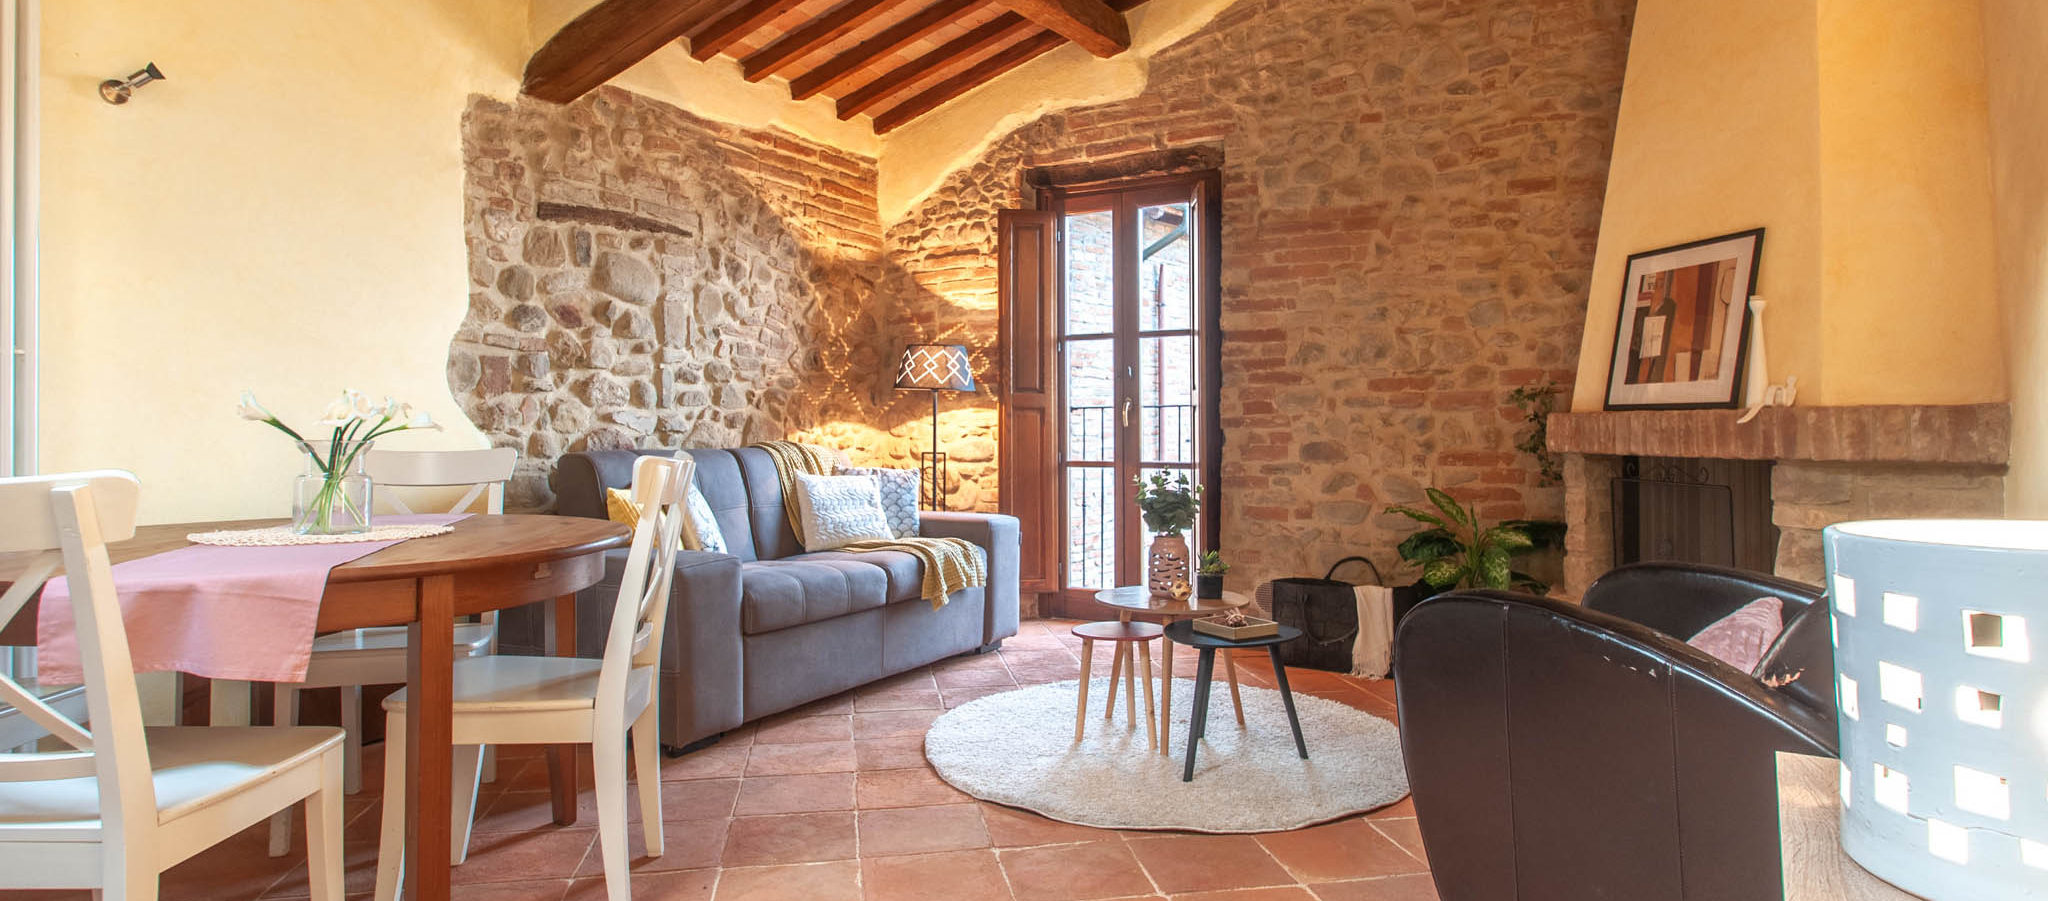 751- Renovated apartment in a medieval village.